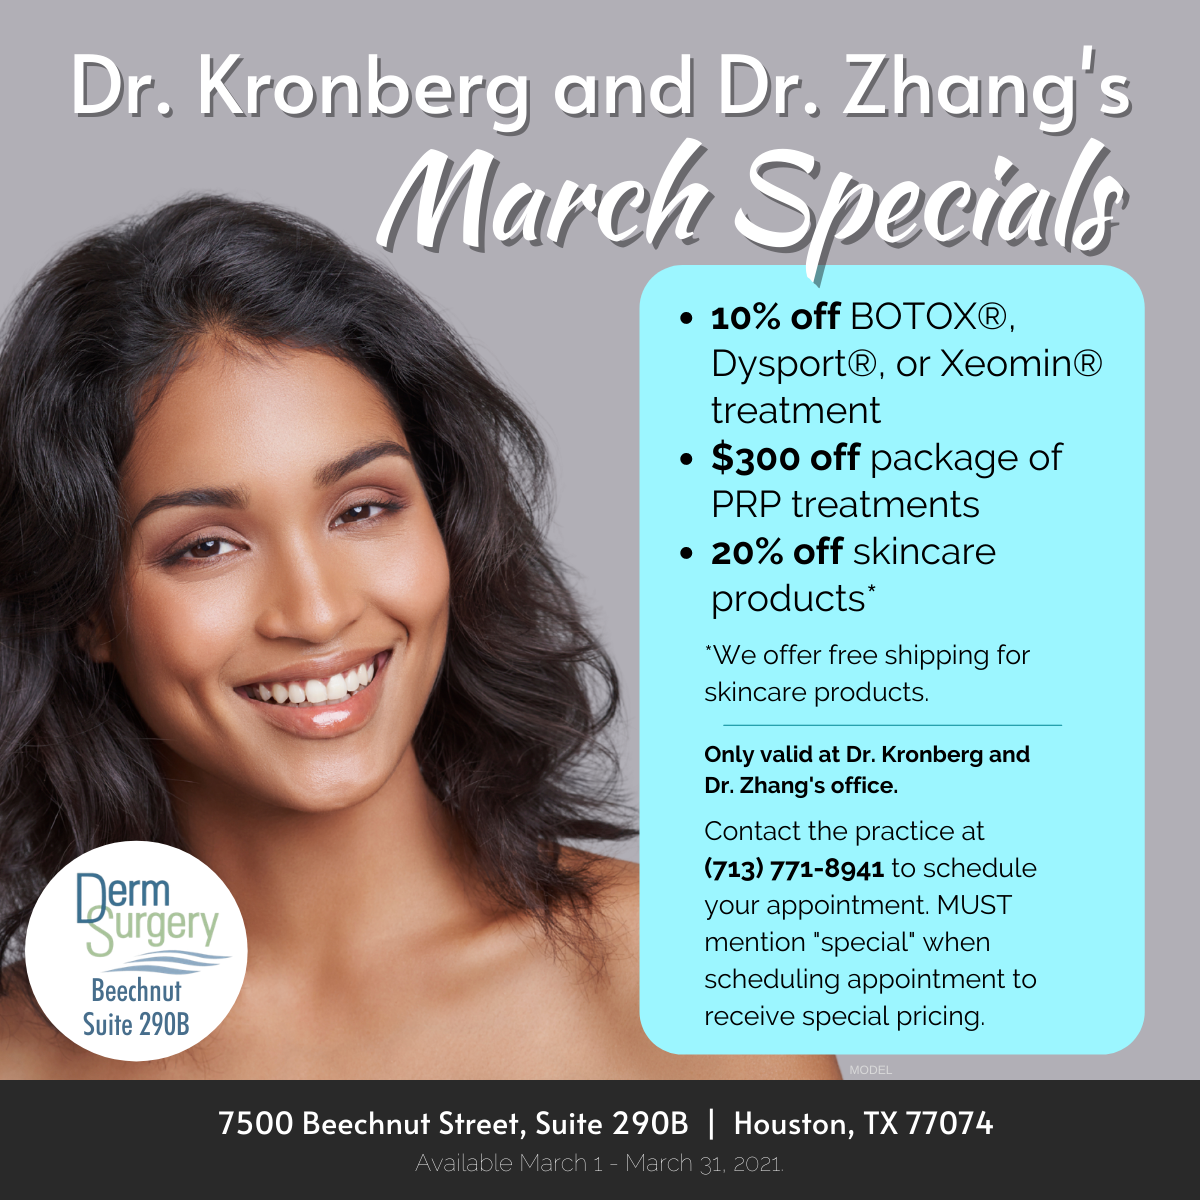 Dr. Kronberg and Dr. Zhang's March Specials